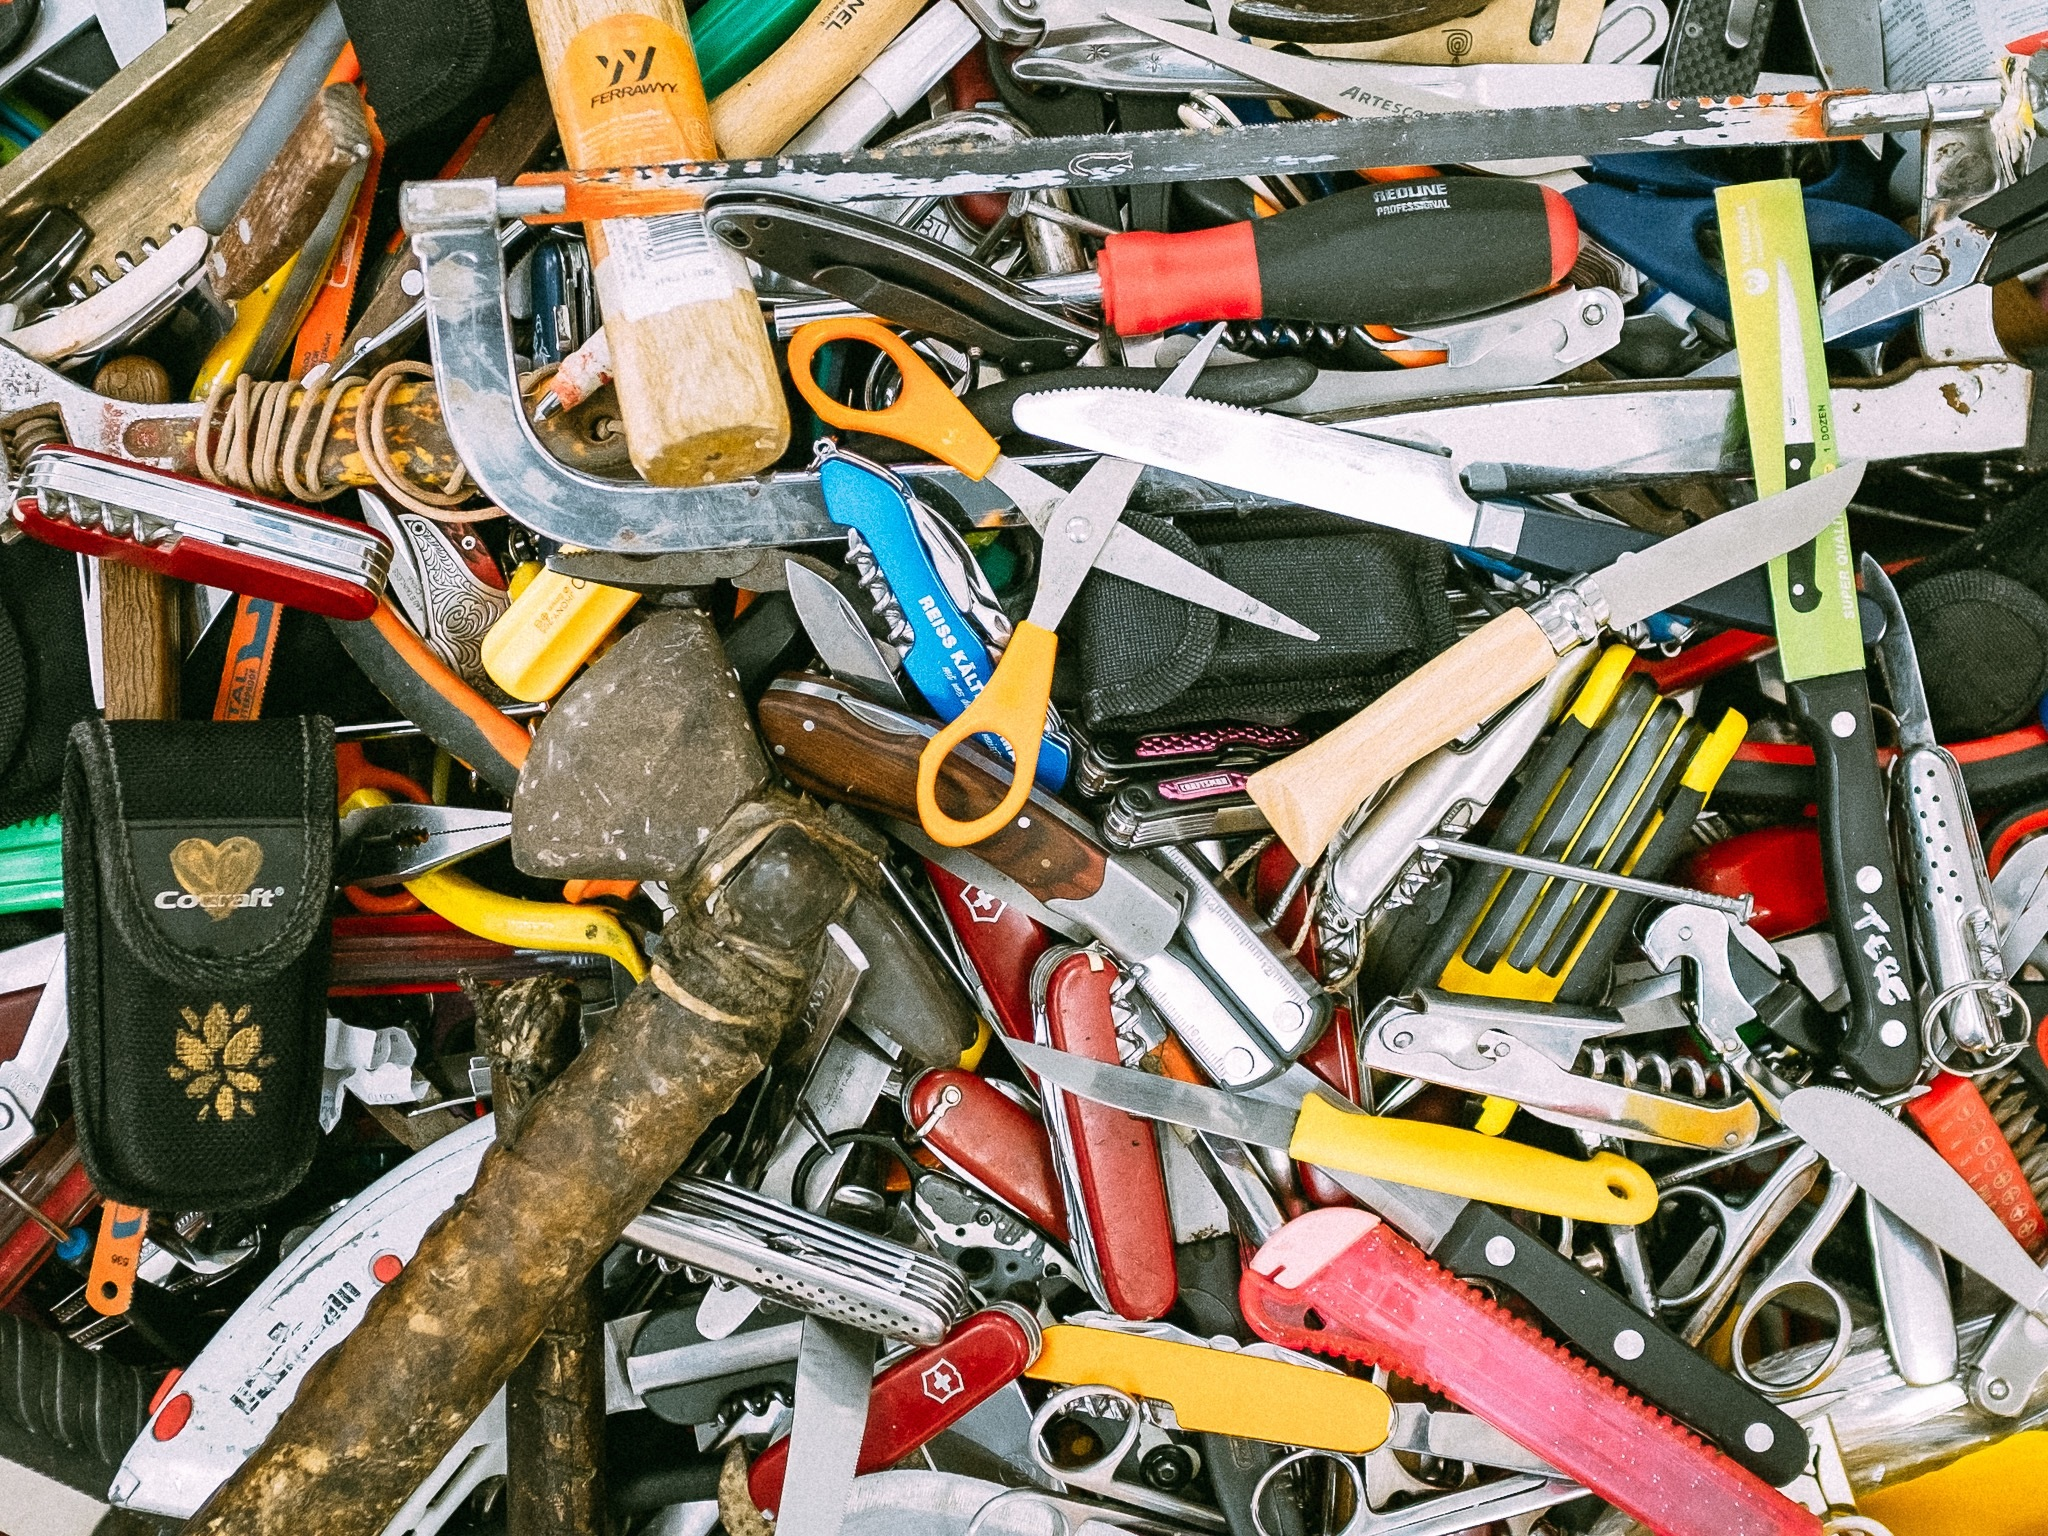 We all have a junk drawer. Let's get it cleaned out!